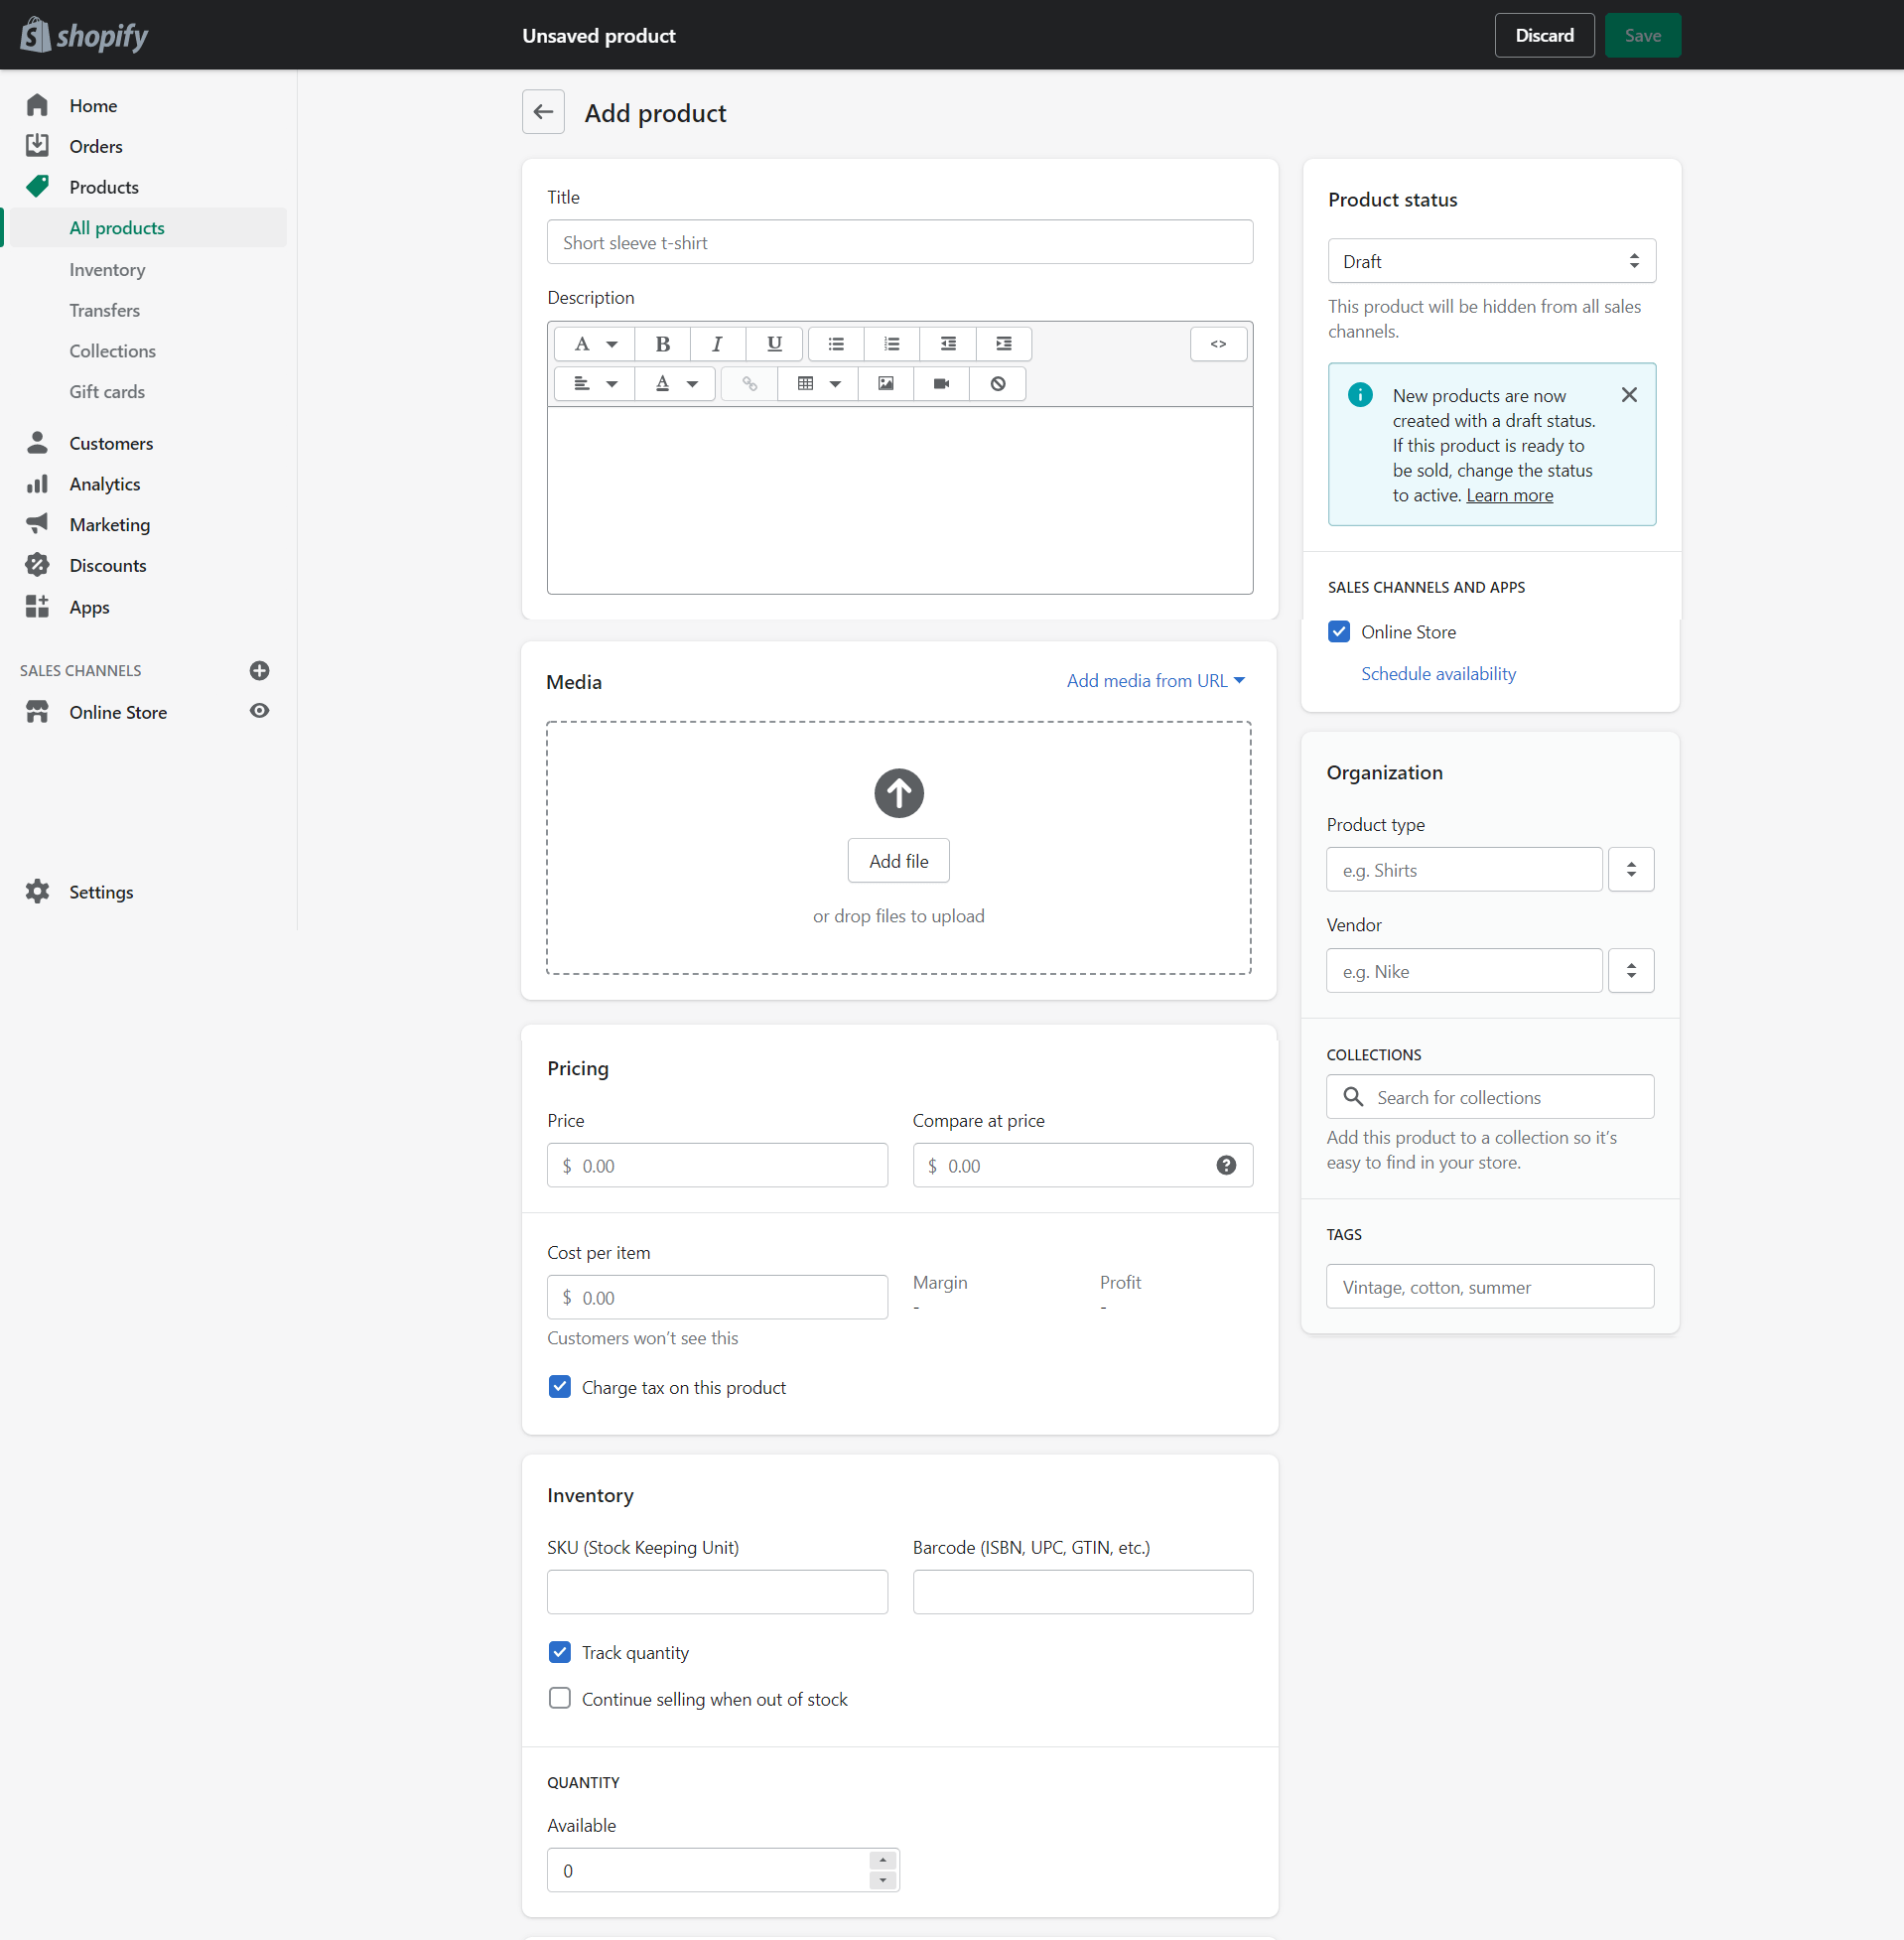 The screen to add a product on Shopify.